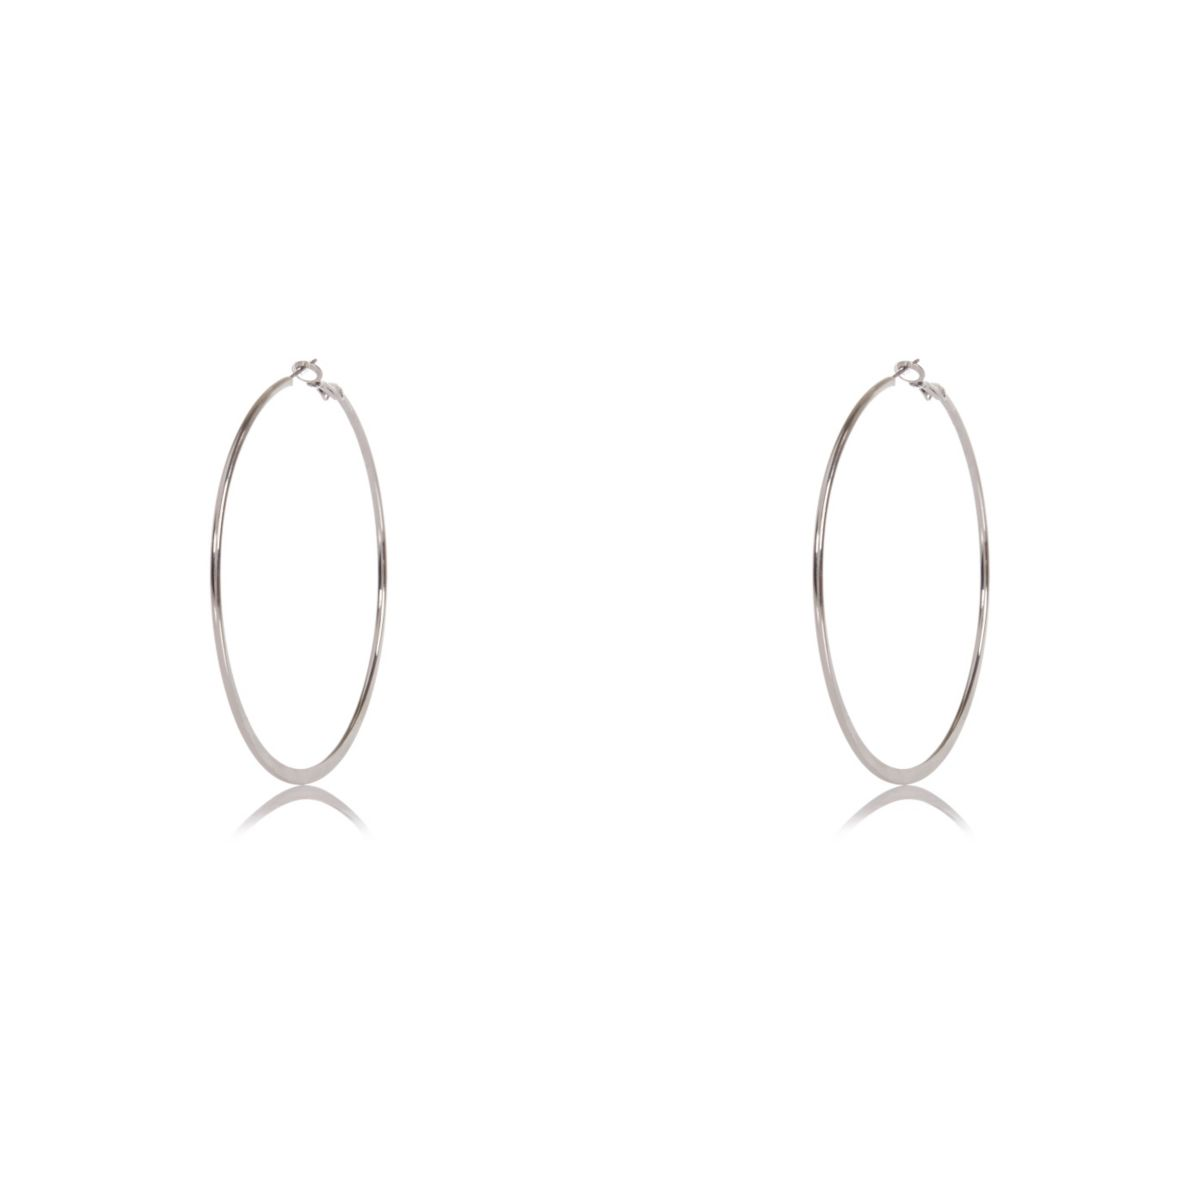 Silver tone hoop clip earrings